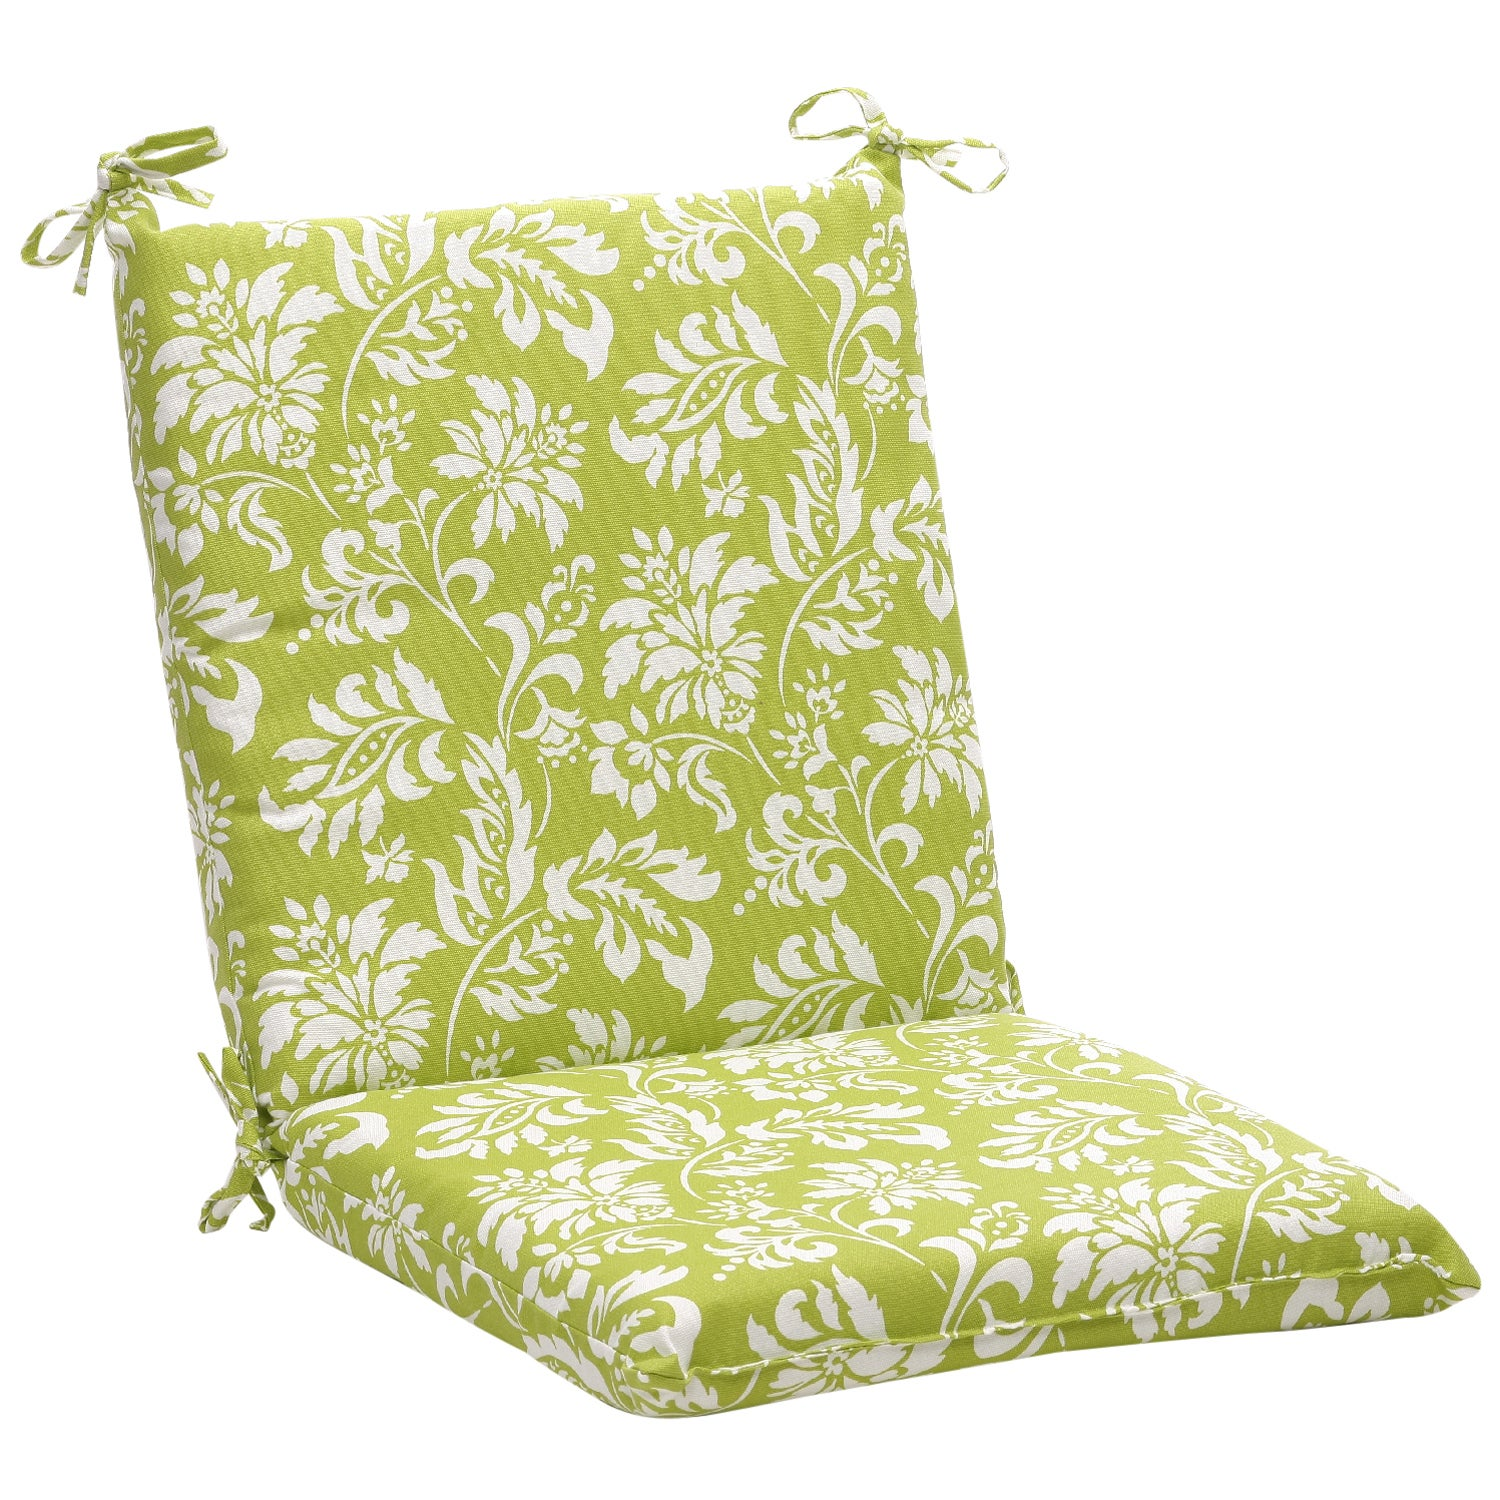 squared green white floral outdoor chair cushion